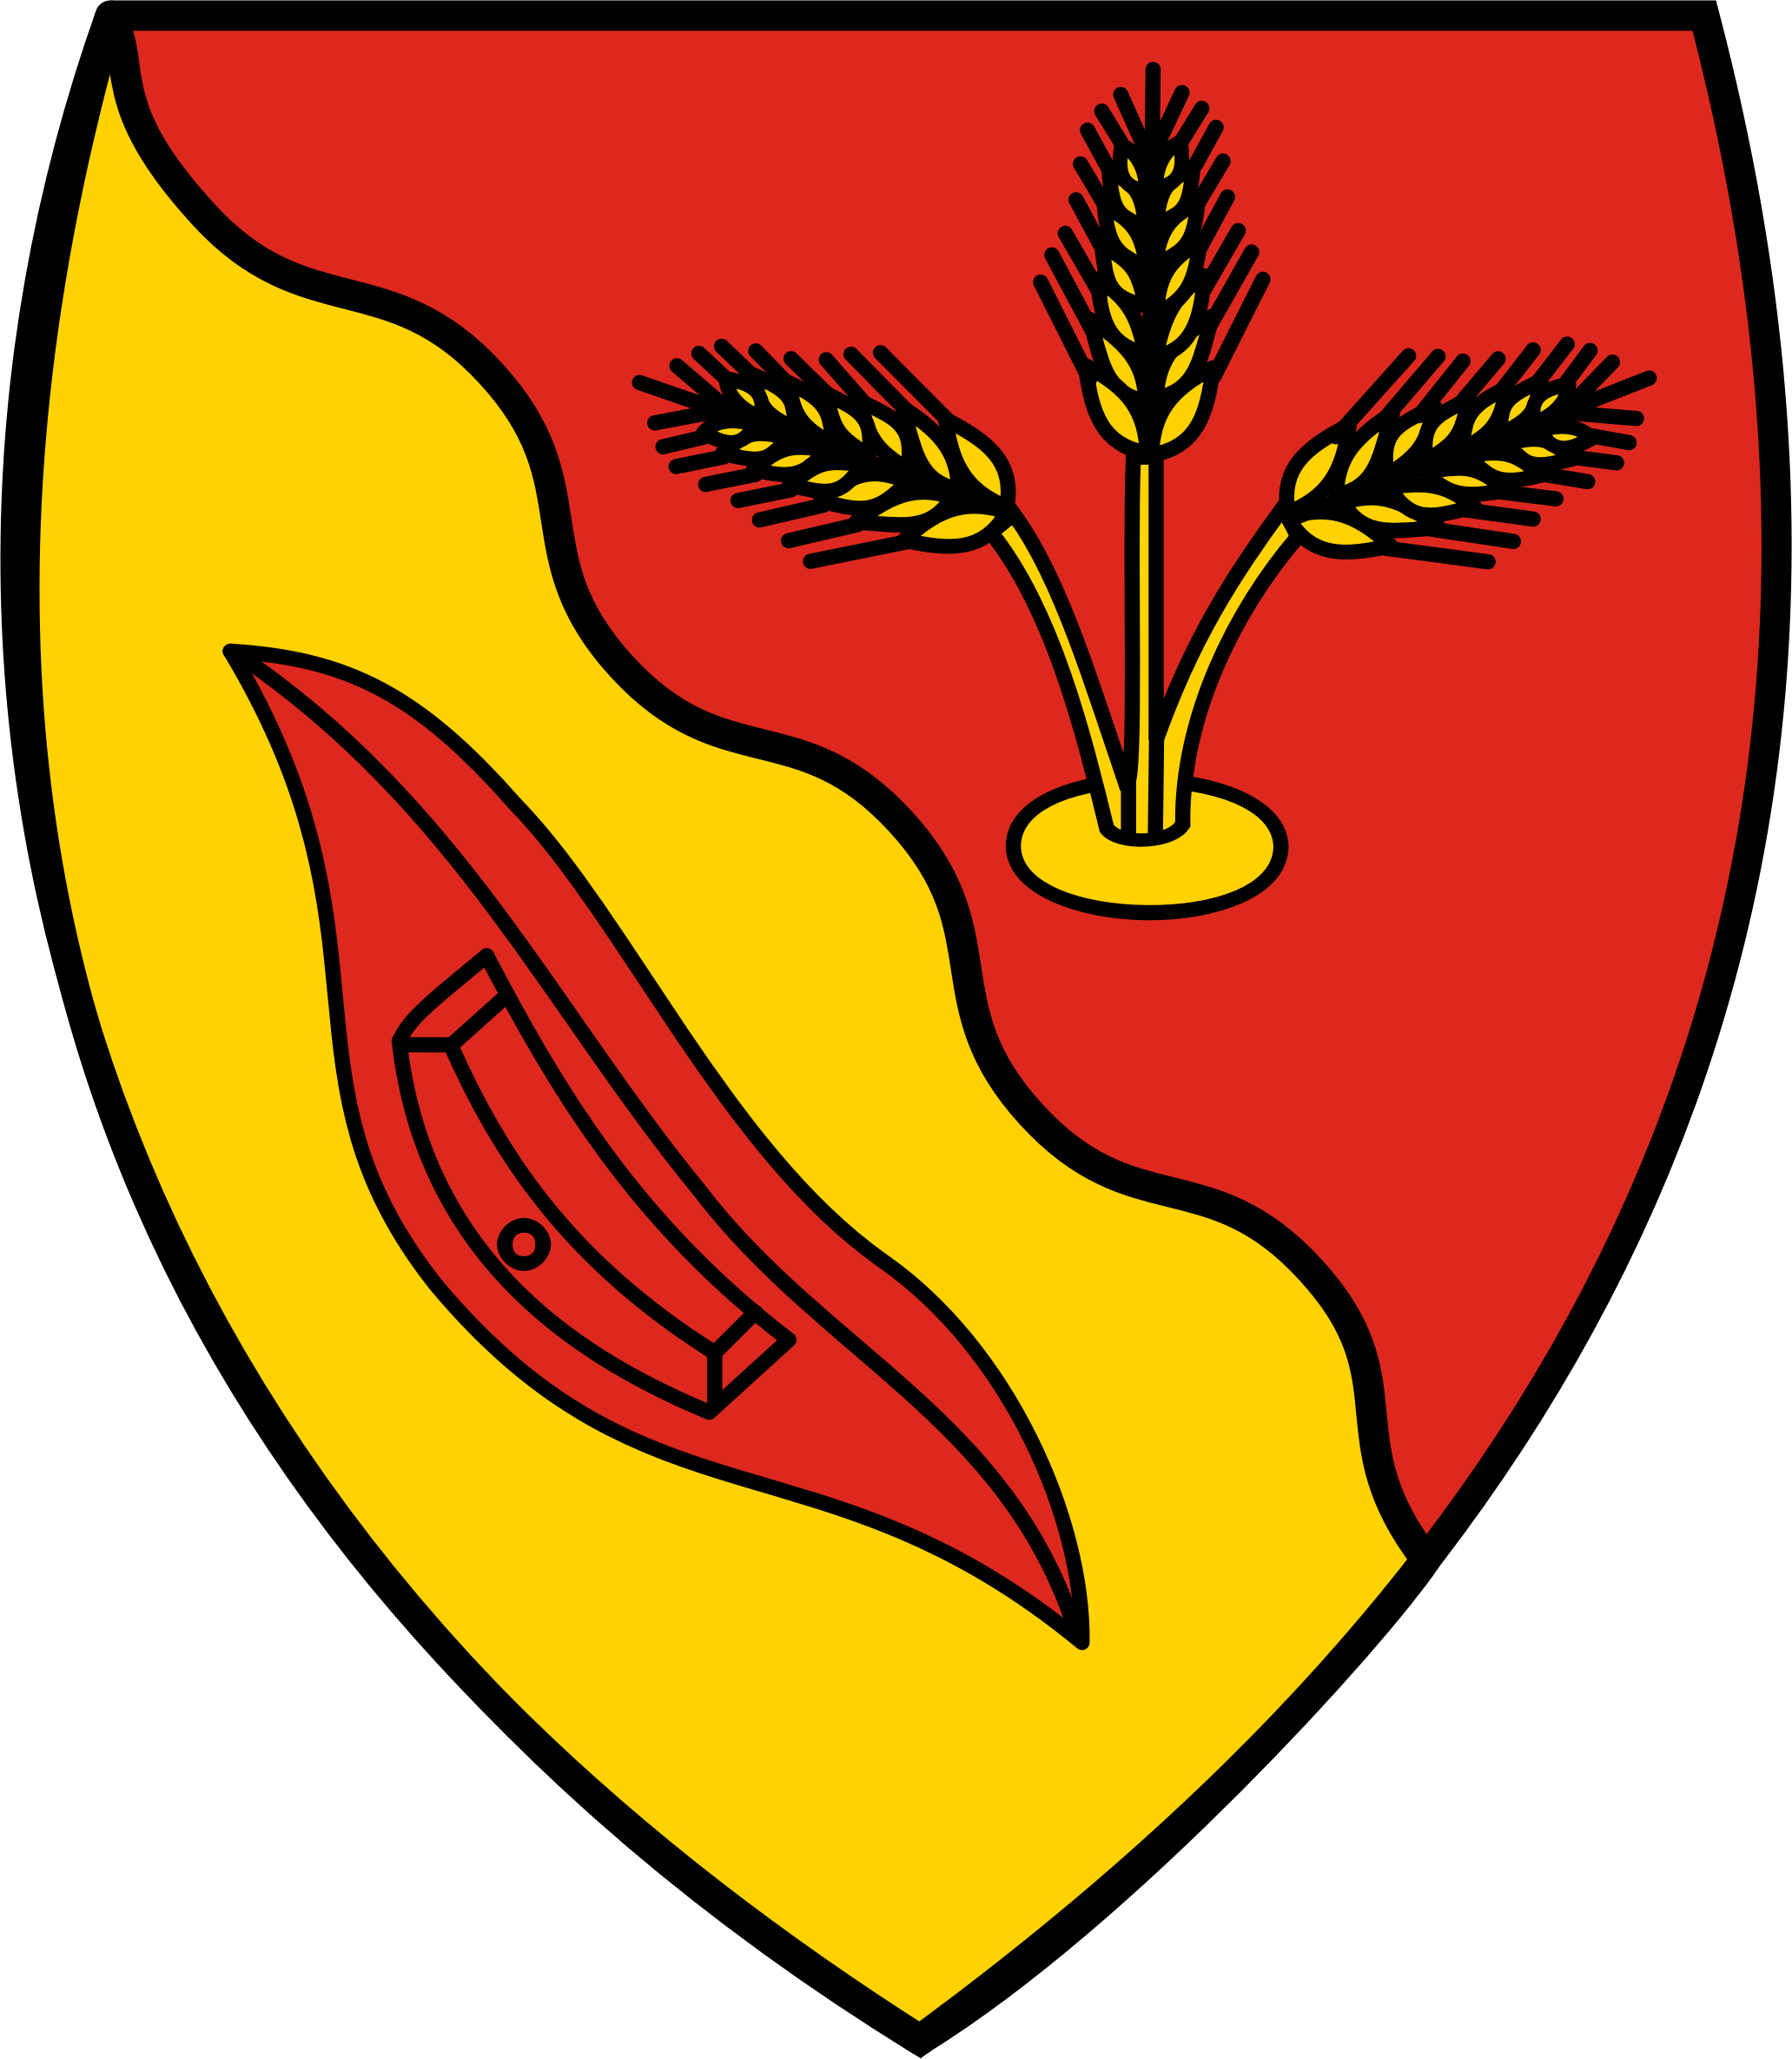 Coat Of Arms Neuenkirchen by Nizips